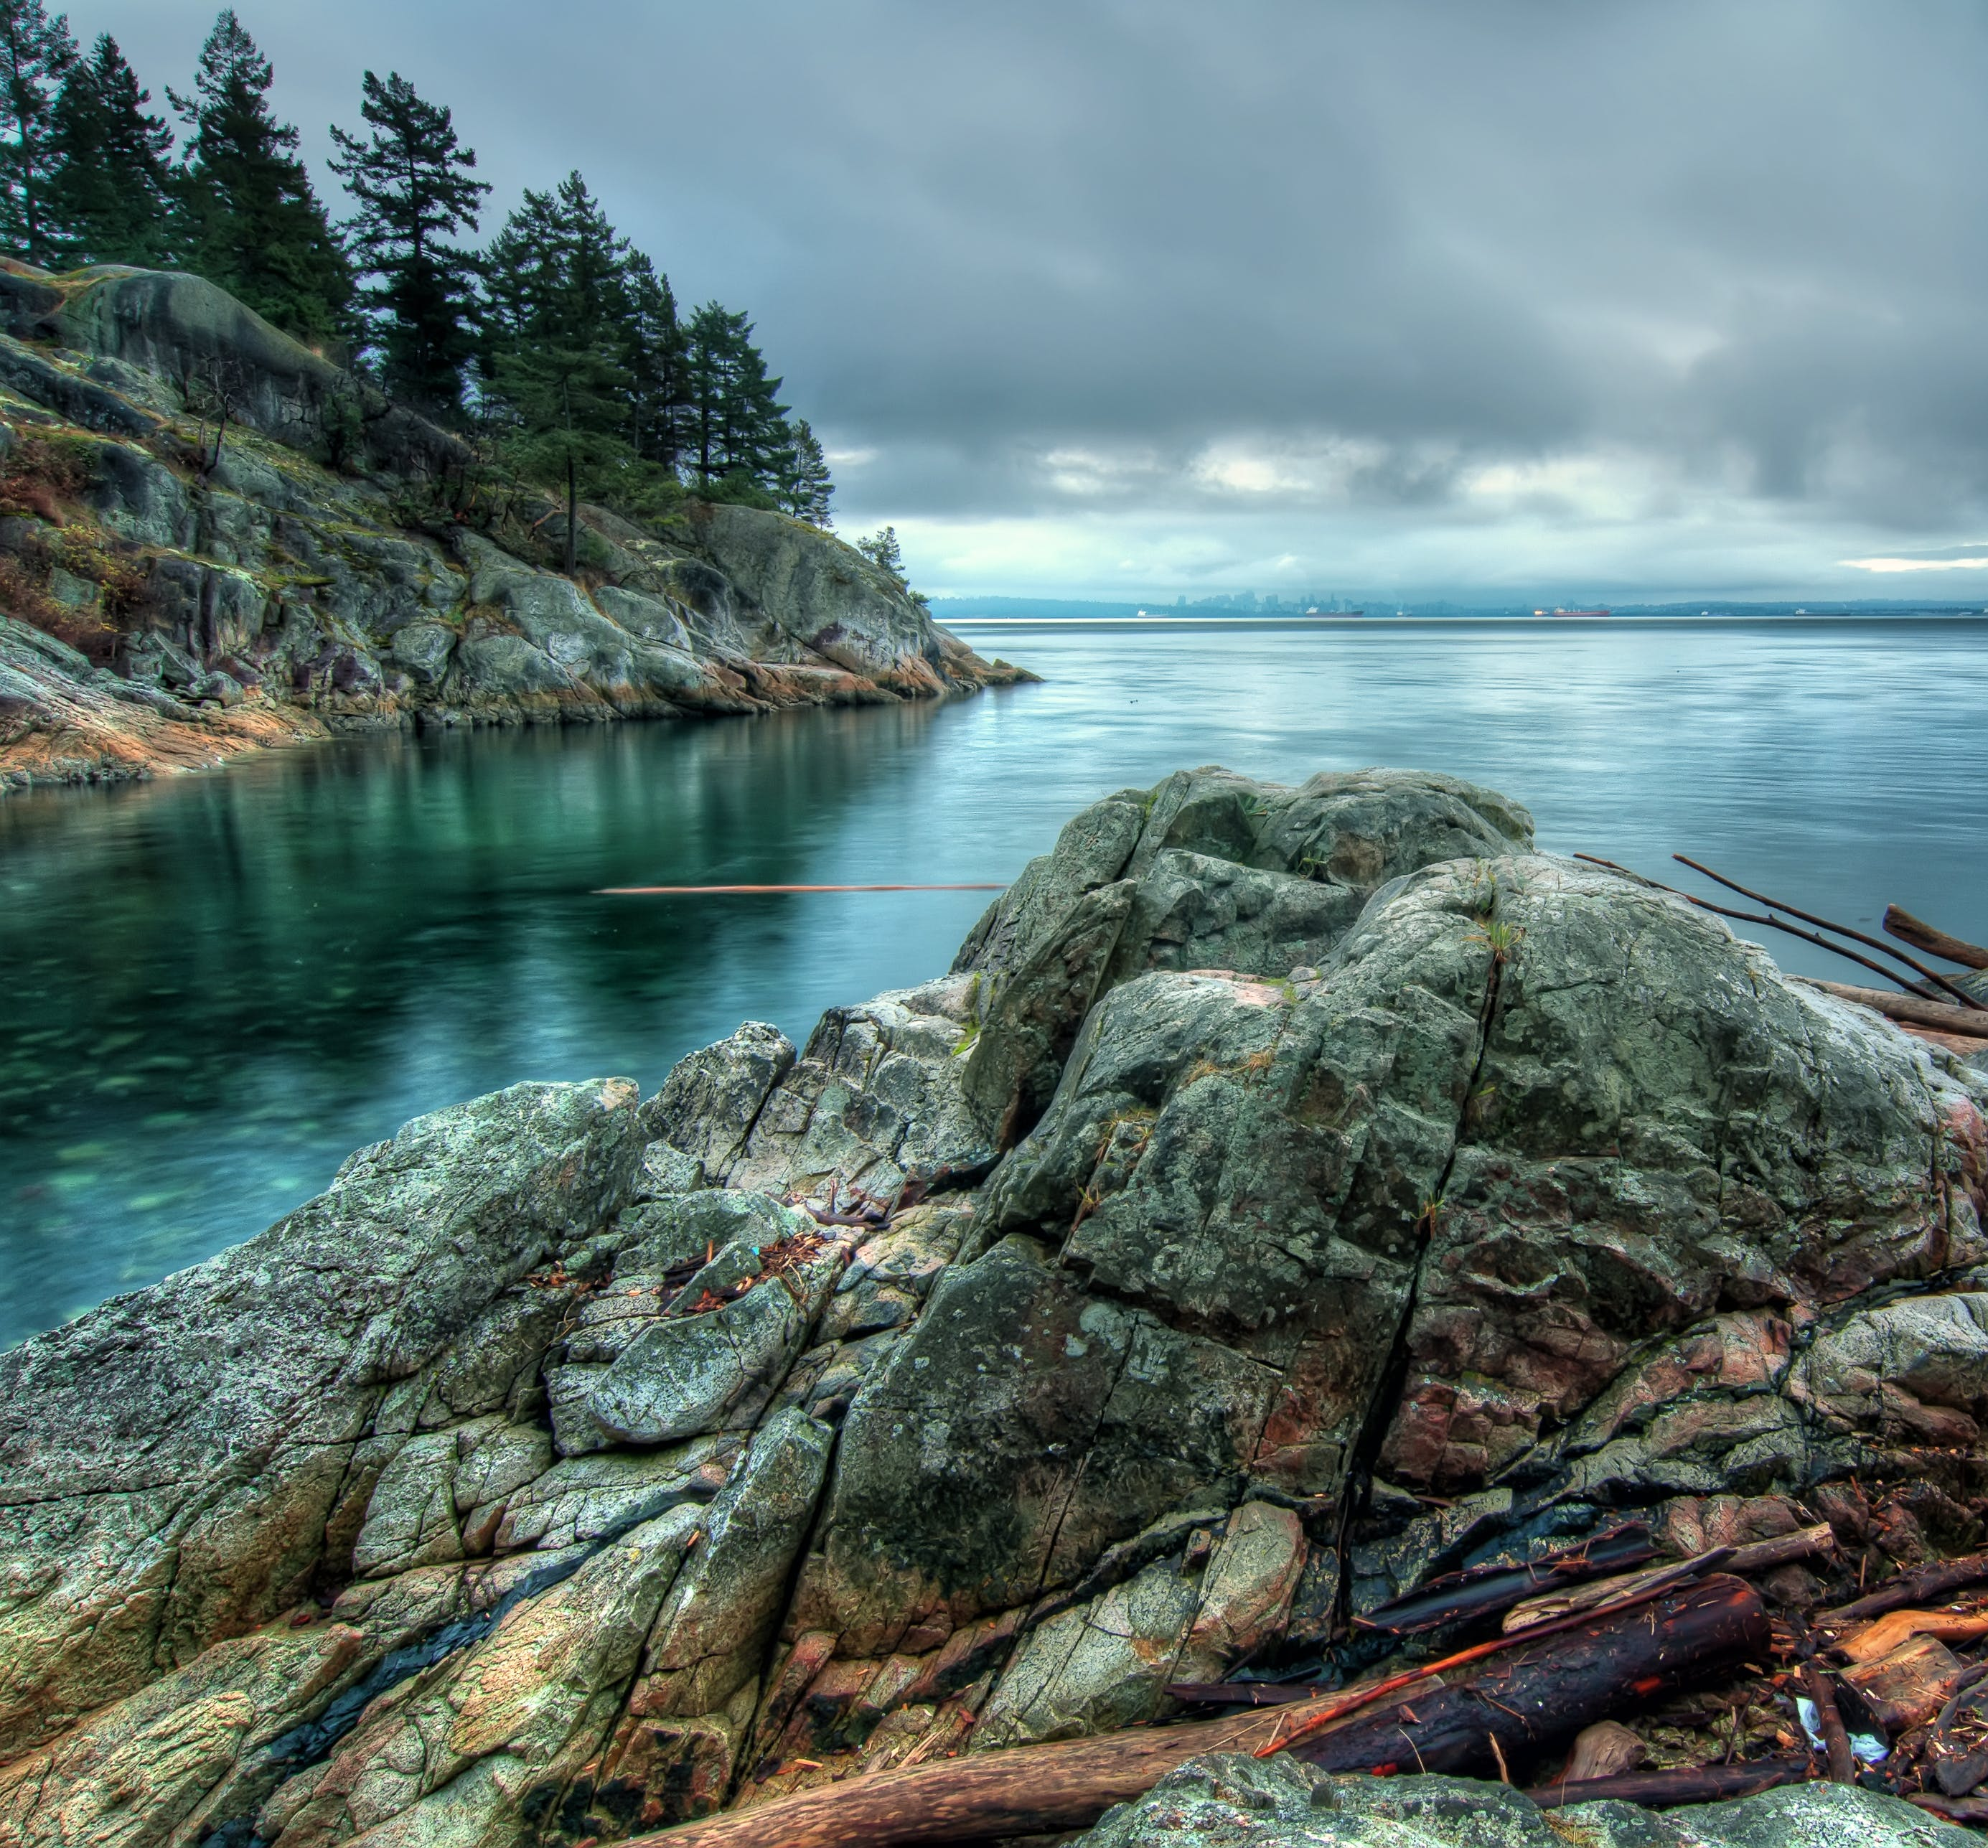 Calm Sea Beside Rock Formation With Trees Nature Photography